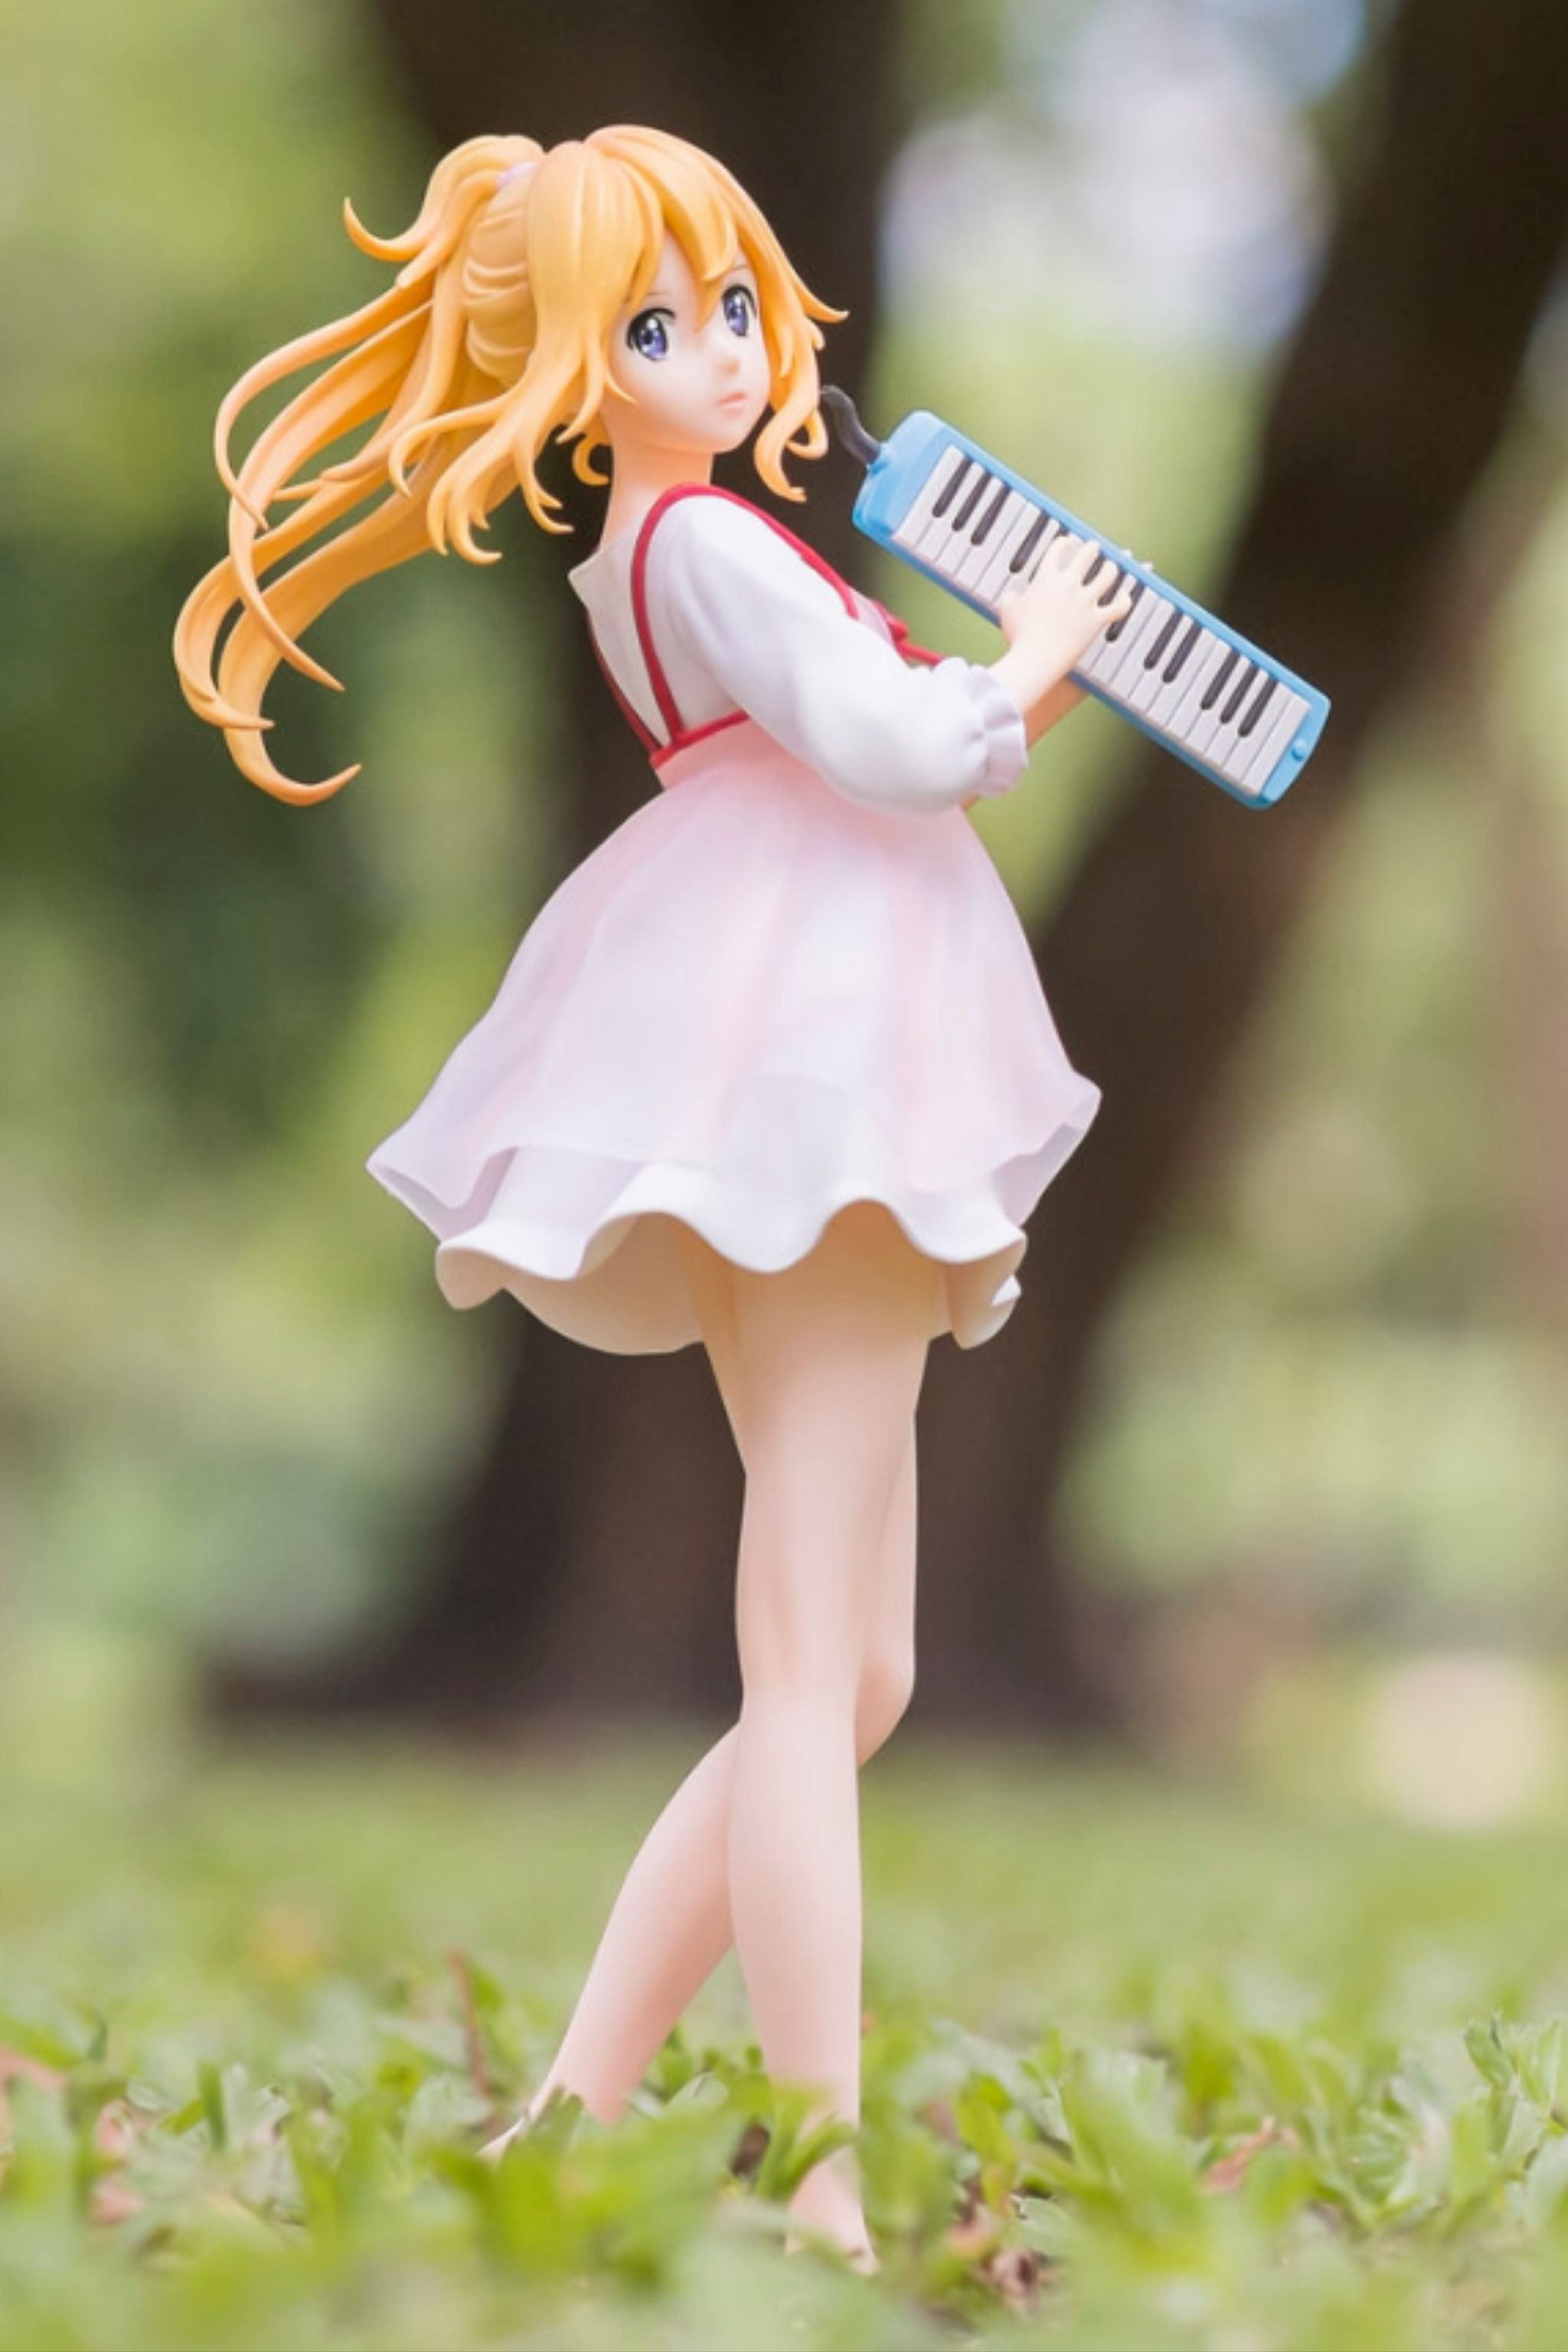 Free Spirited Musician 5 Your Lie In April Anime Princess Blue Anime